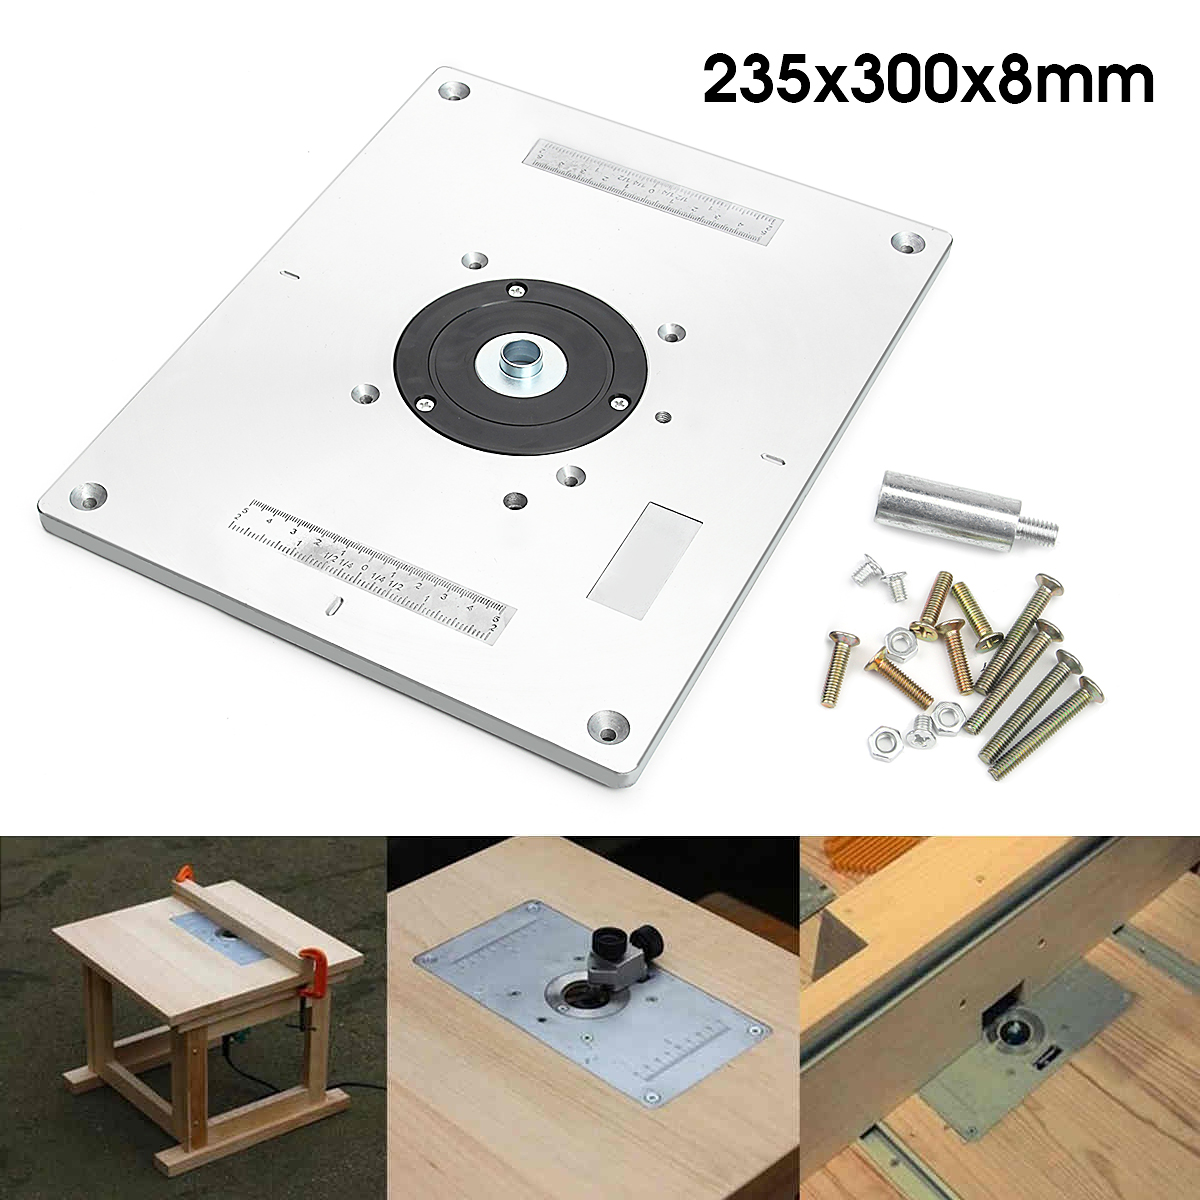 Aluminum router table insert plate 235mm x 300mm x 8mm for aluminum router table insert plate 235mm x 300mm x 8mm for woodworking benches greentooth Choice Image